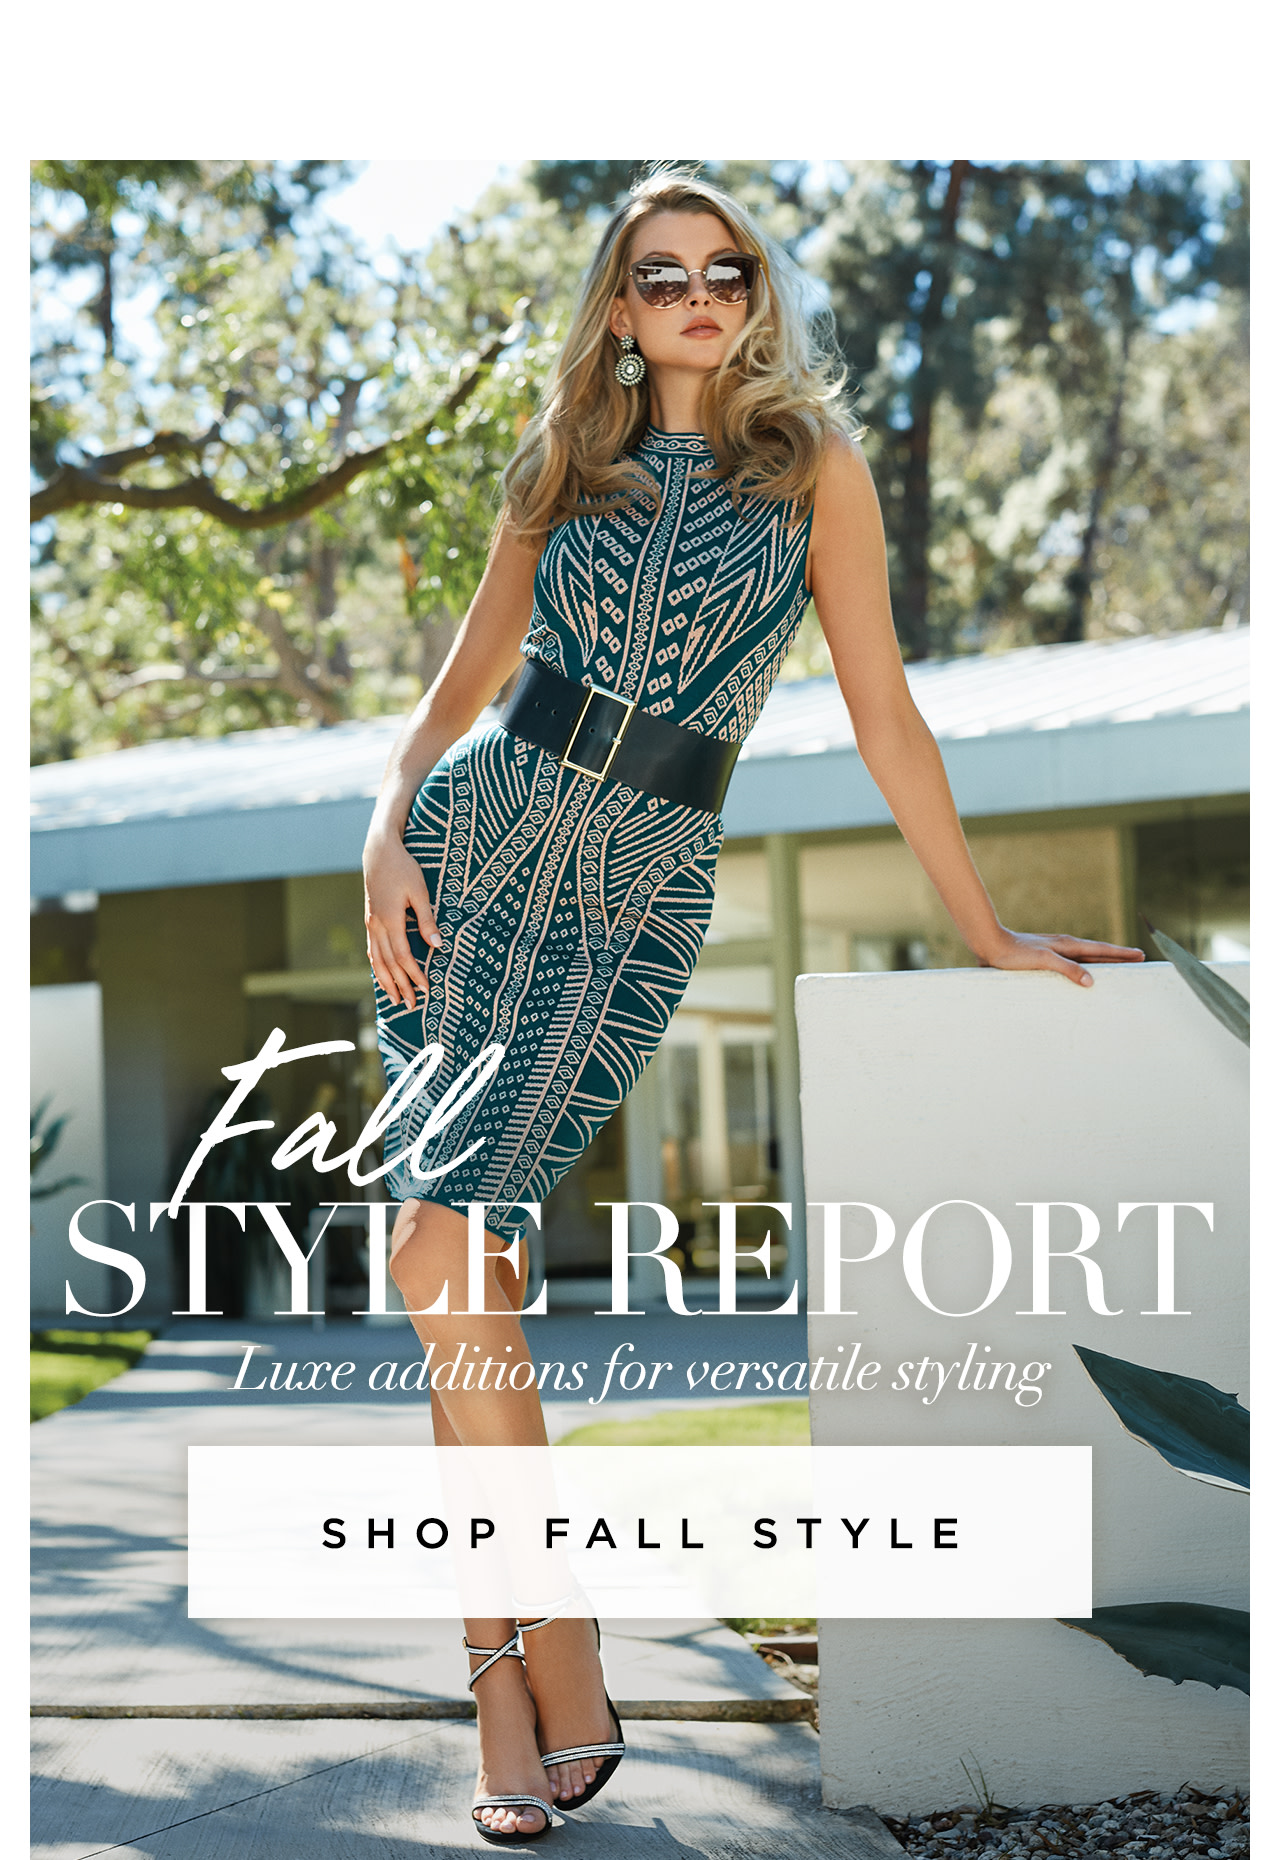 Shop Fall Style